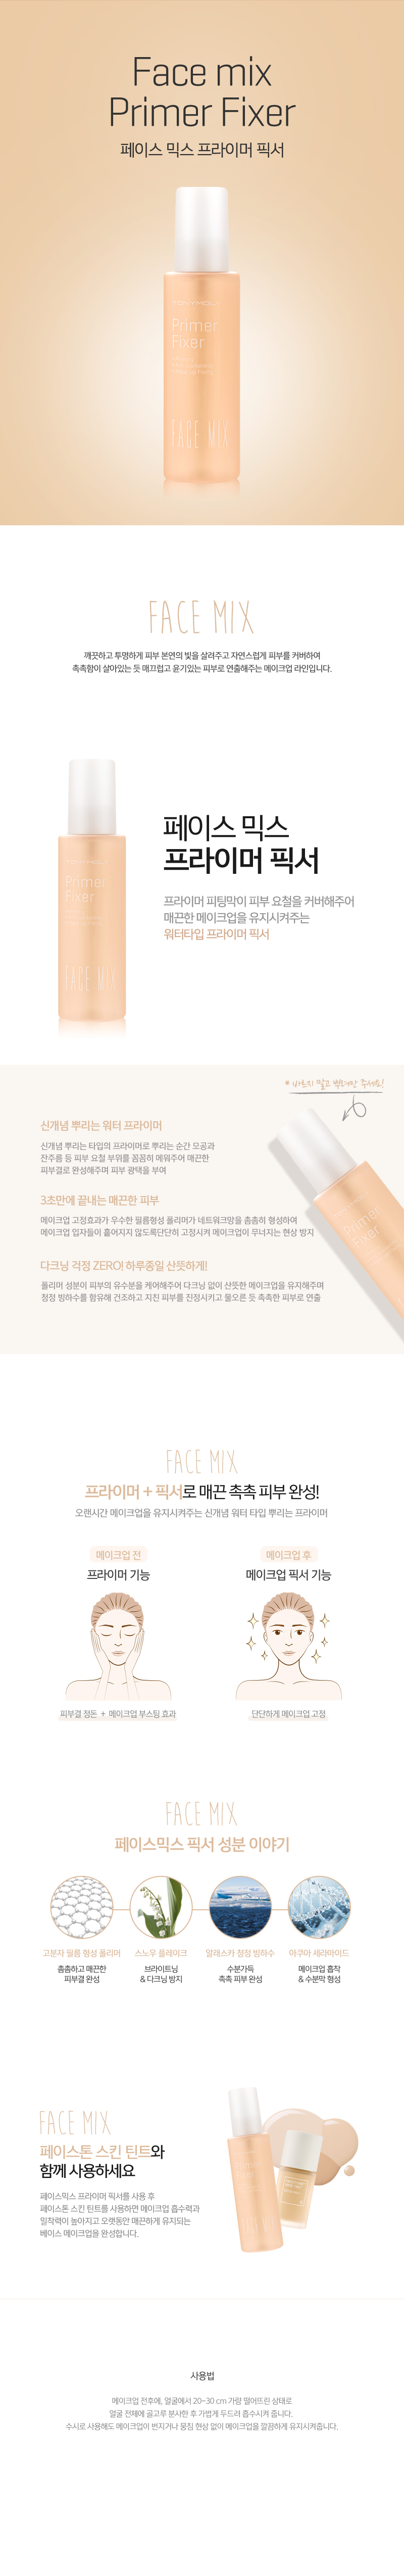 Tonymoly Face Primer Fixer Seoul Next By You Malaysia